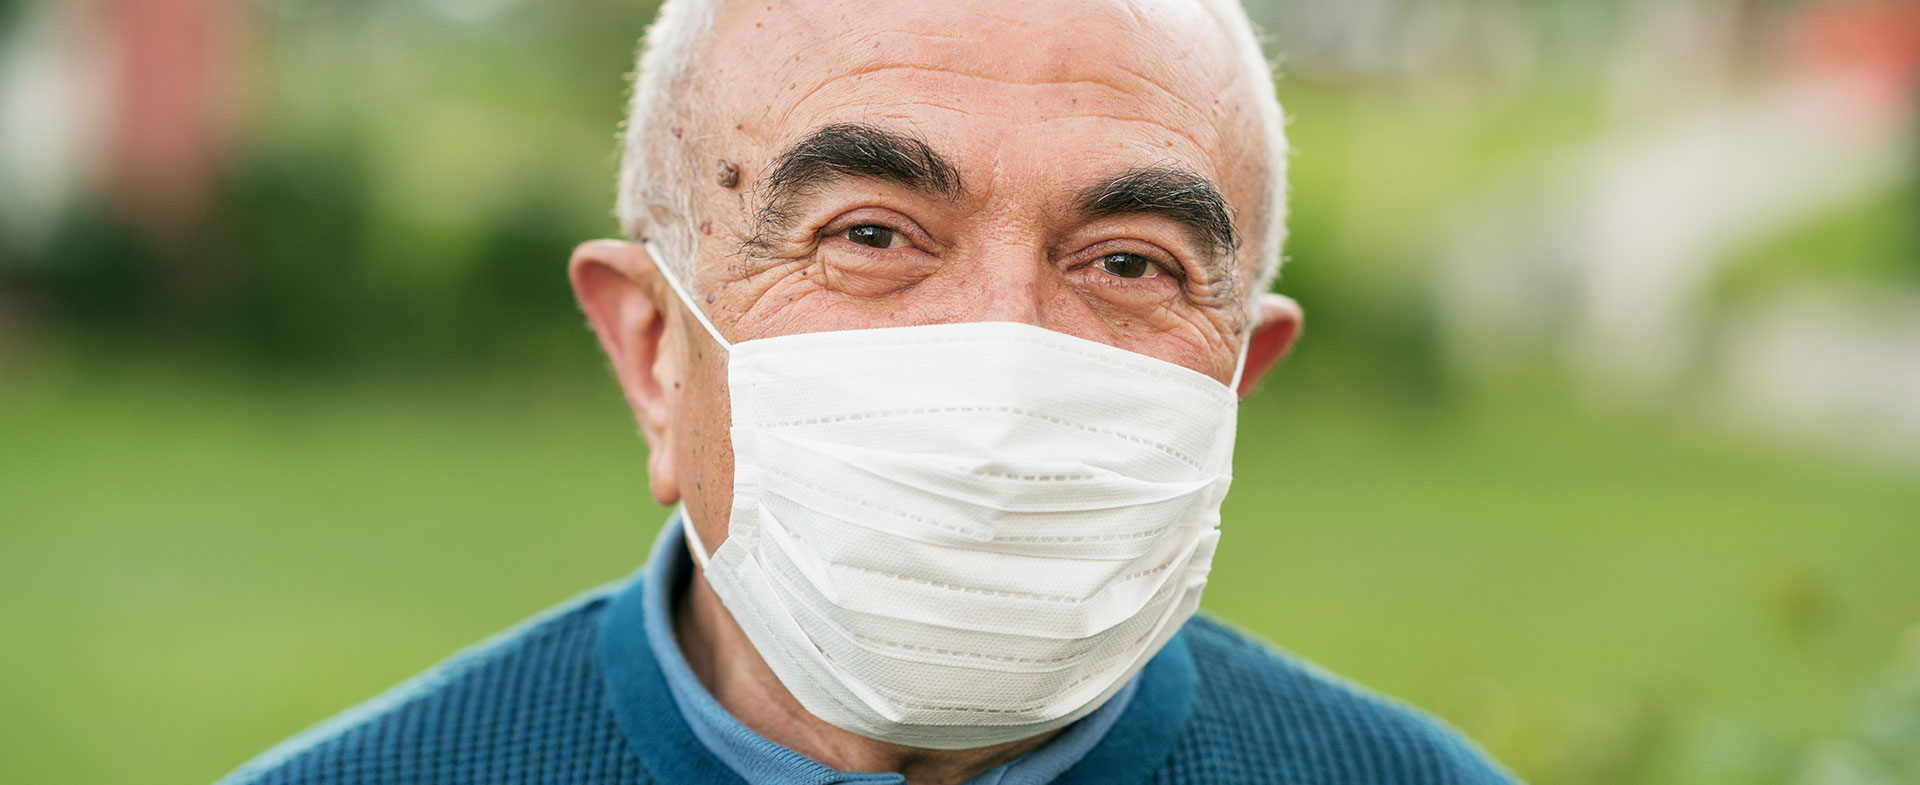 elderly man wearing mask